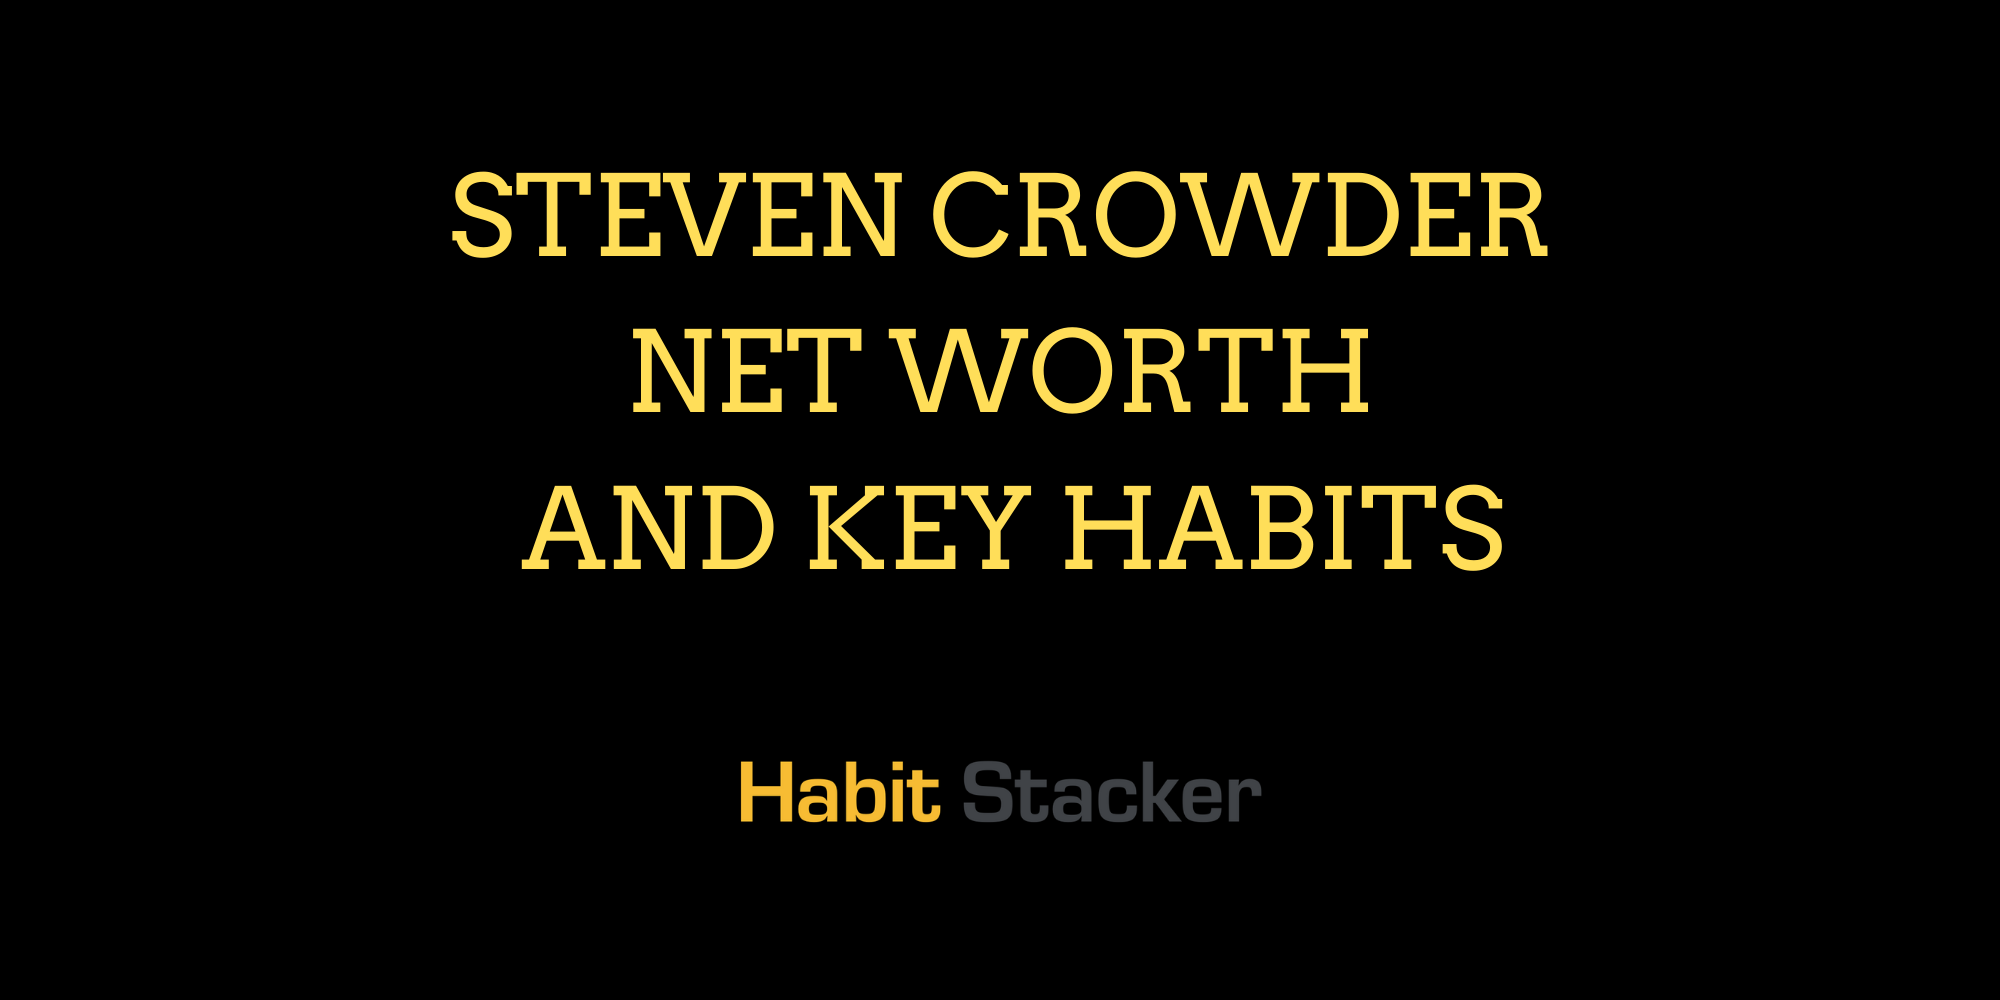 Steven Crowder Net Worth and Key habits